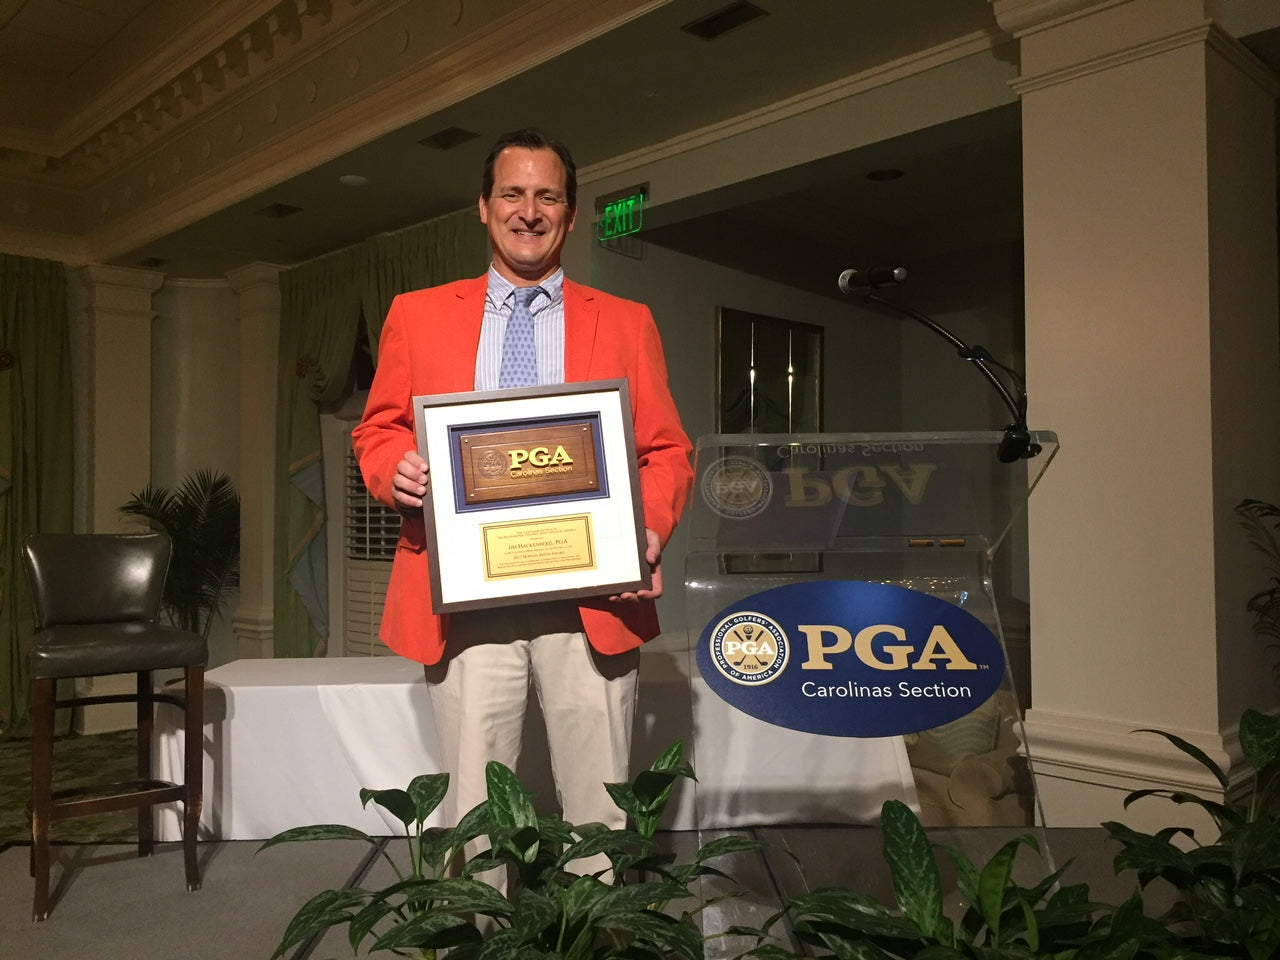 Horton Smith Award Recipient for the Carolinas PGA